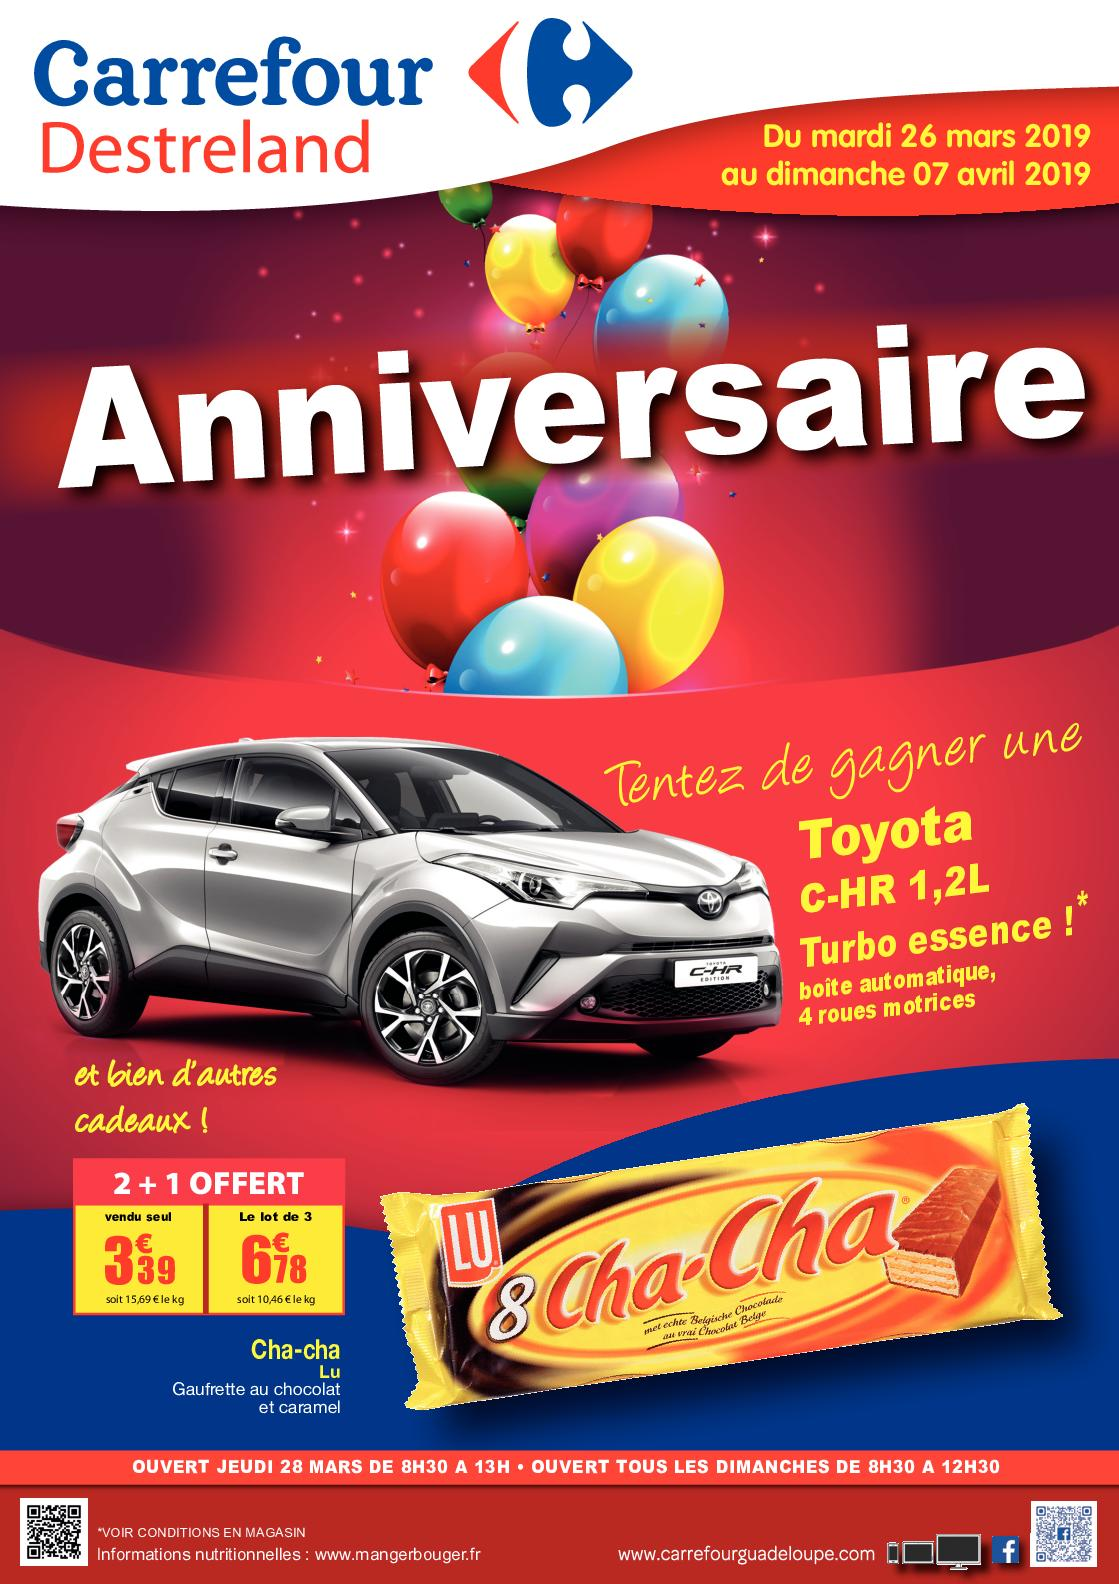 Calaméo 20190326 Carrefour Destreland Catalogue Anniversaire